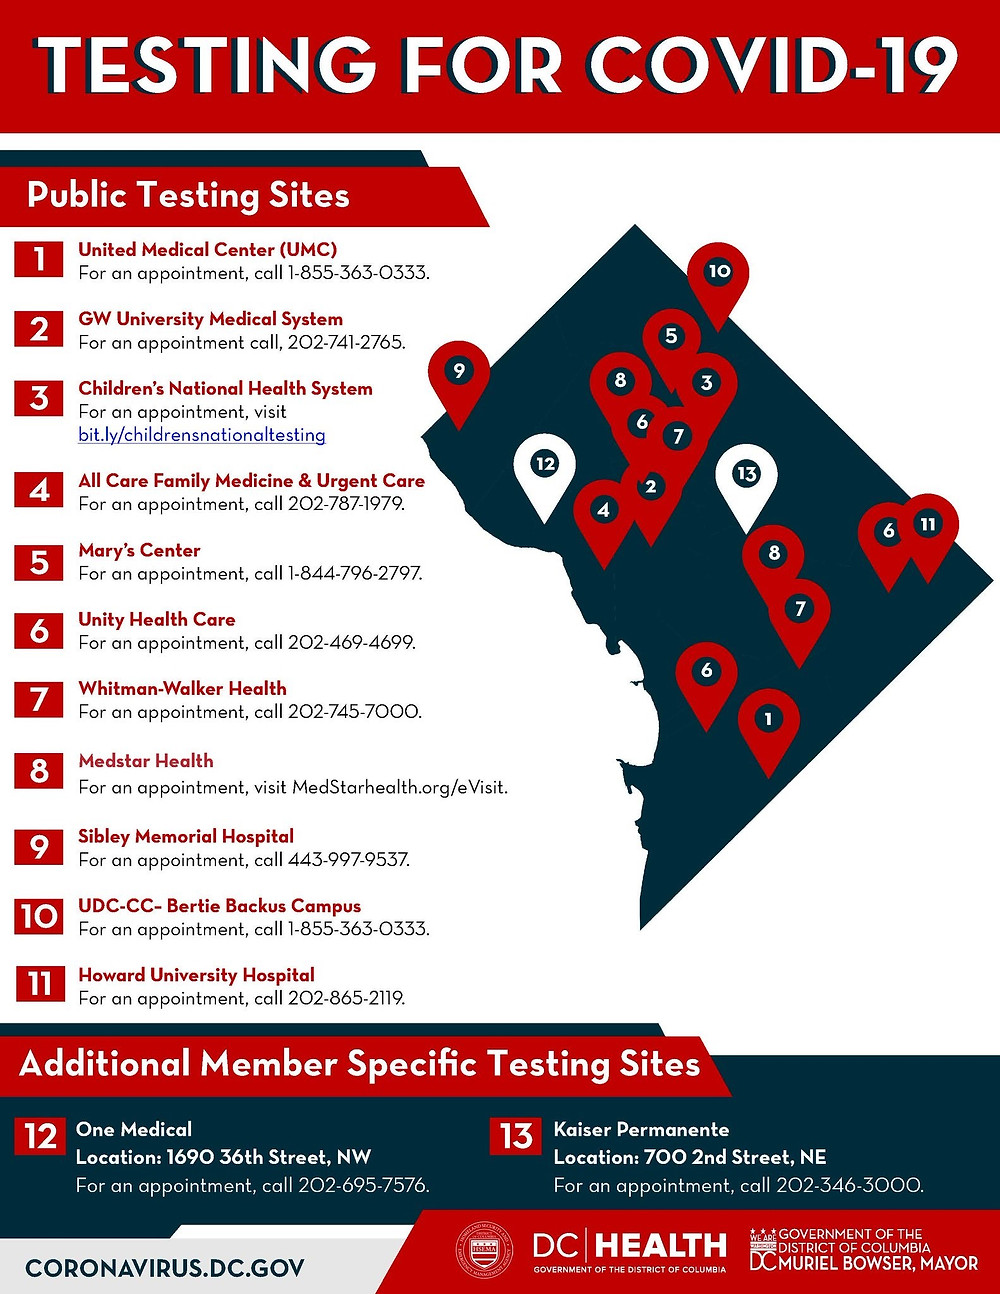 Public testing sites for COVID-19